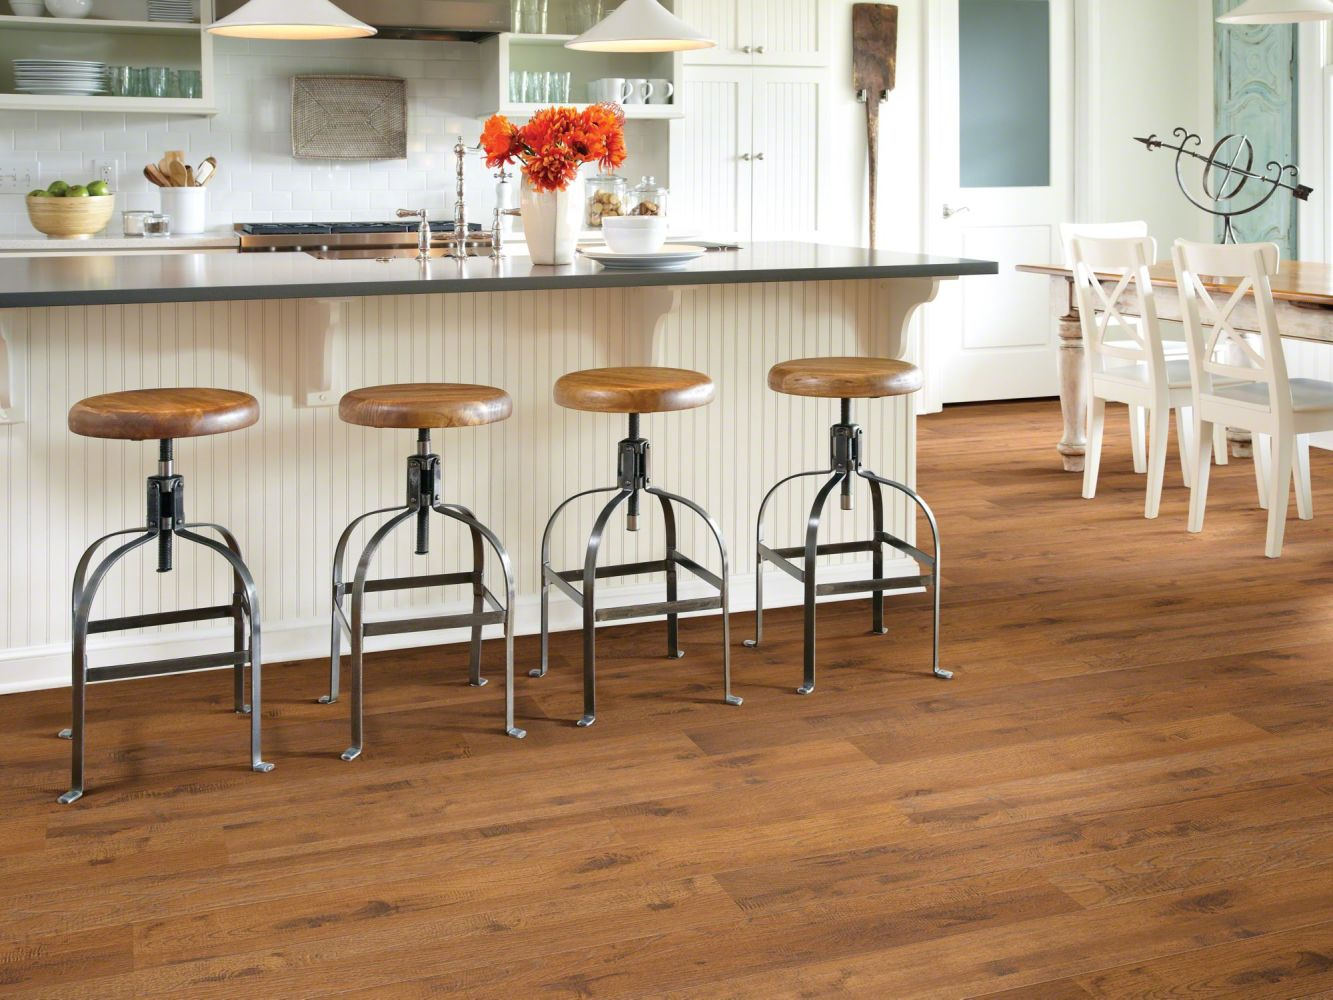 Shaw Floors Versalock Laminate Riverdale Hickory St. Johns Hckry 00277_SL300